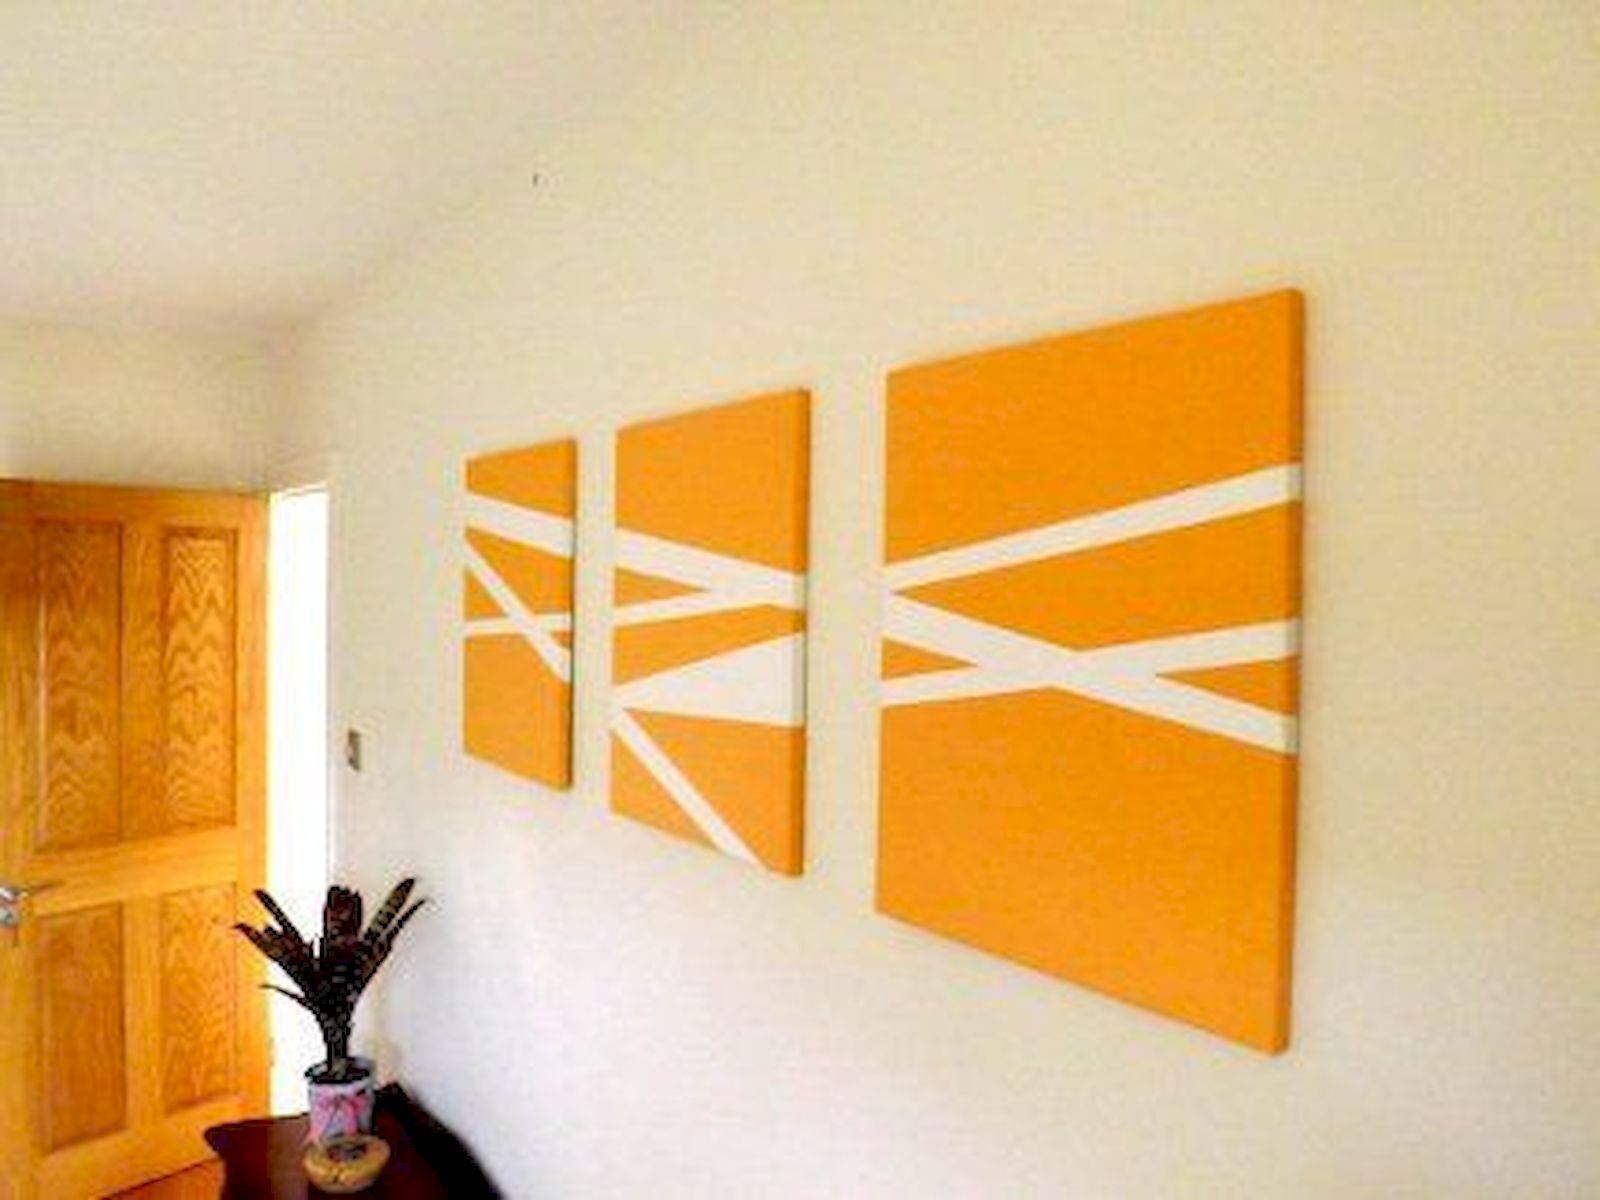 30 Easy and Creative DIY Wall Art Ideas For Decoration (17)